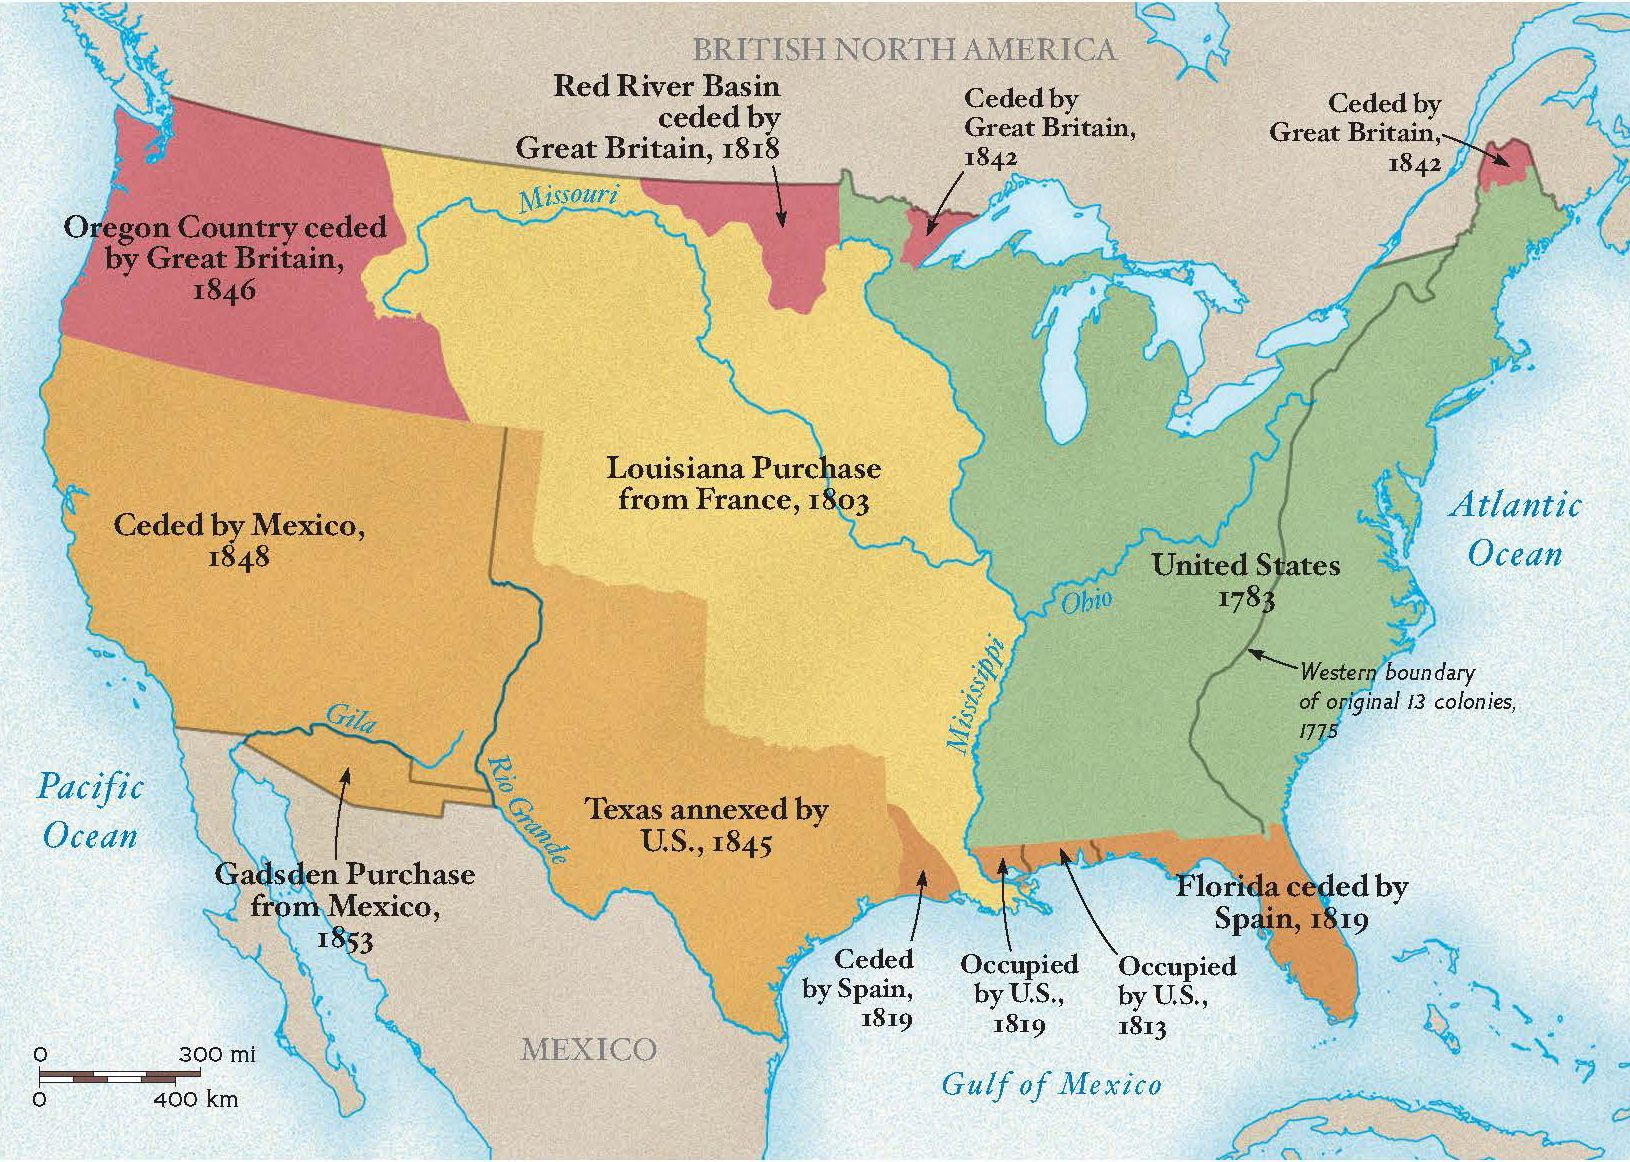 Us Land Acquisition Map Territorial Gains by the U.S. | National Geographic Society